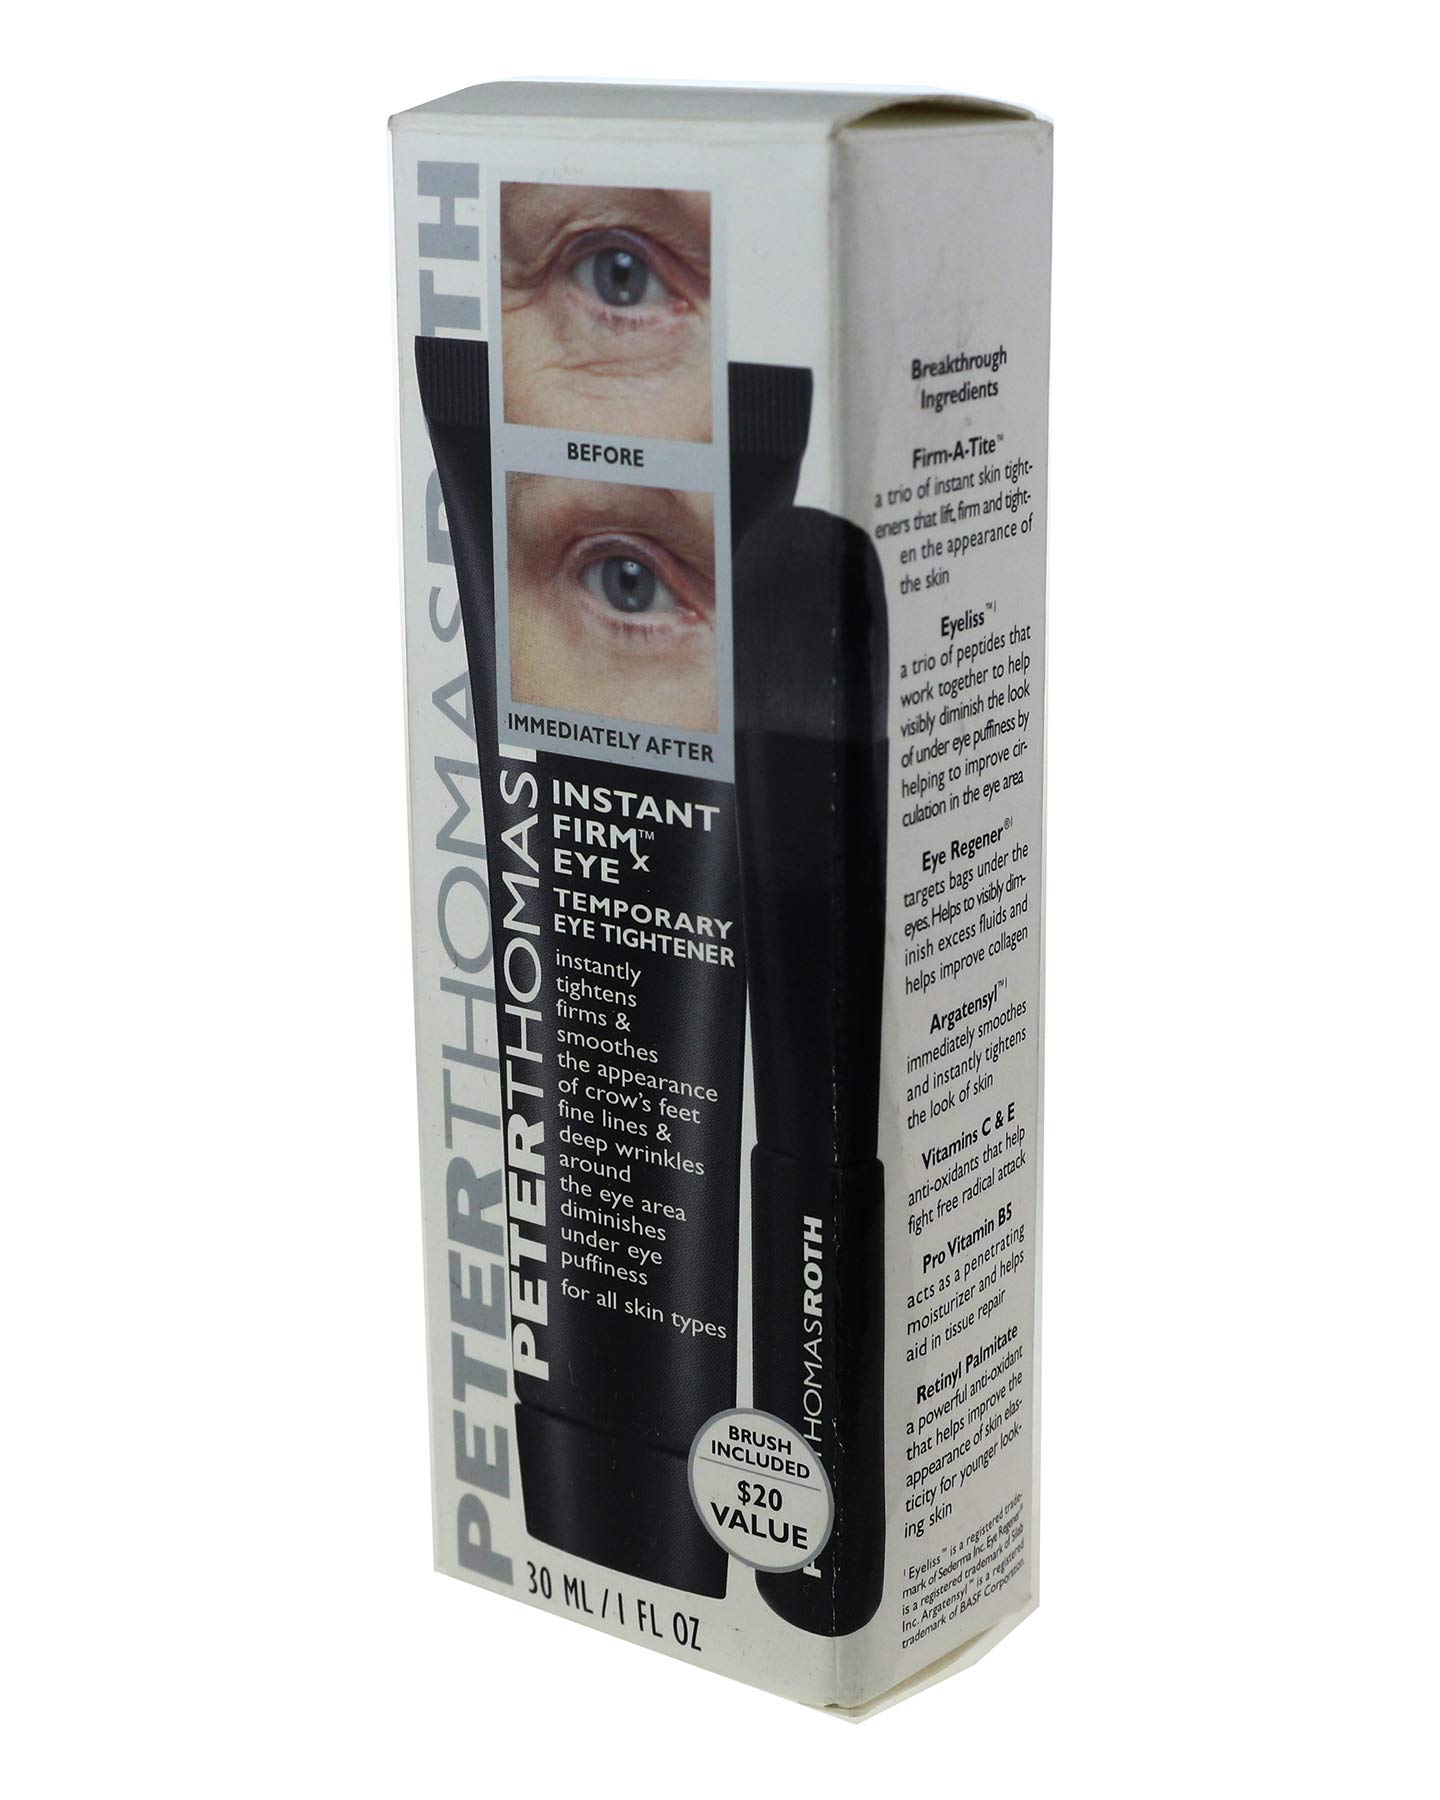 Peter Thomas Roth 'Instant Firmx Eye Temporary Eye Tightener with Brush